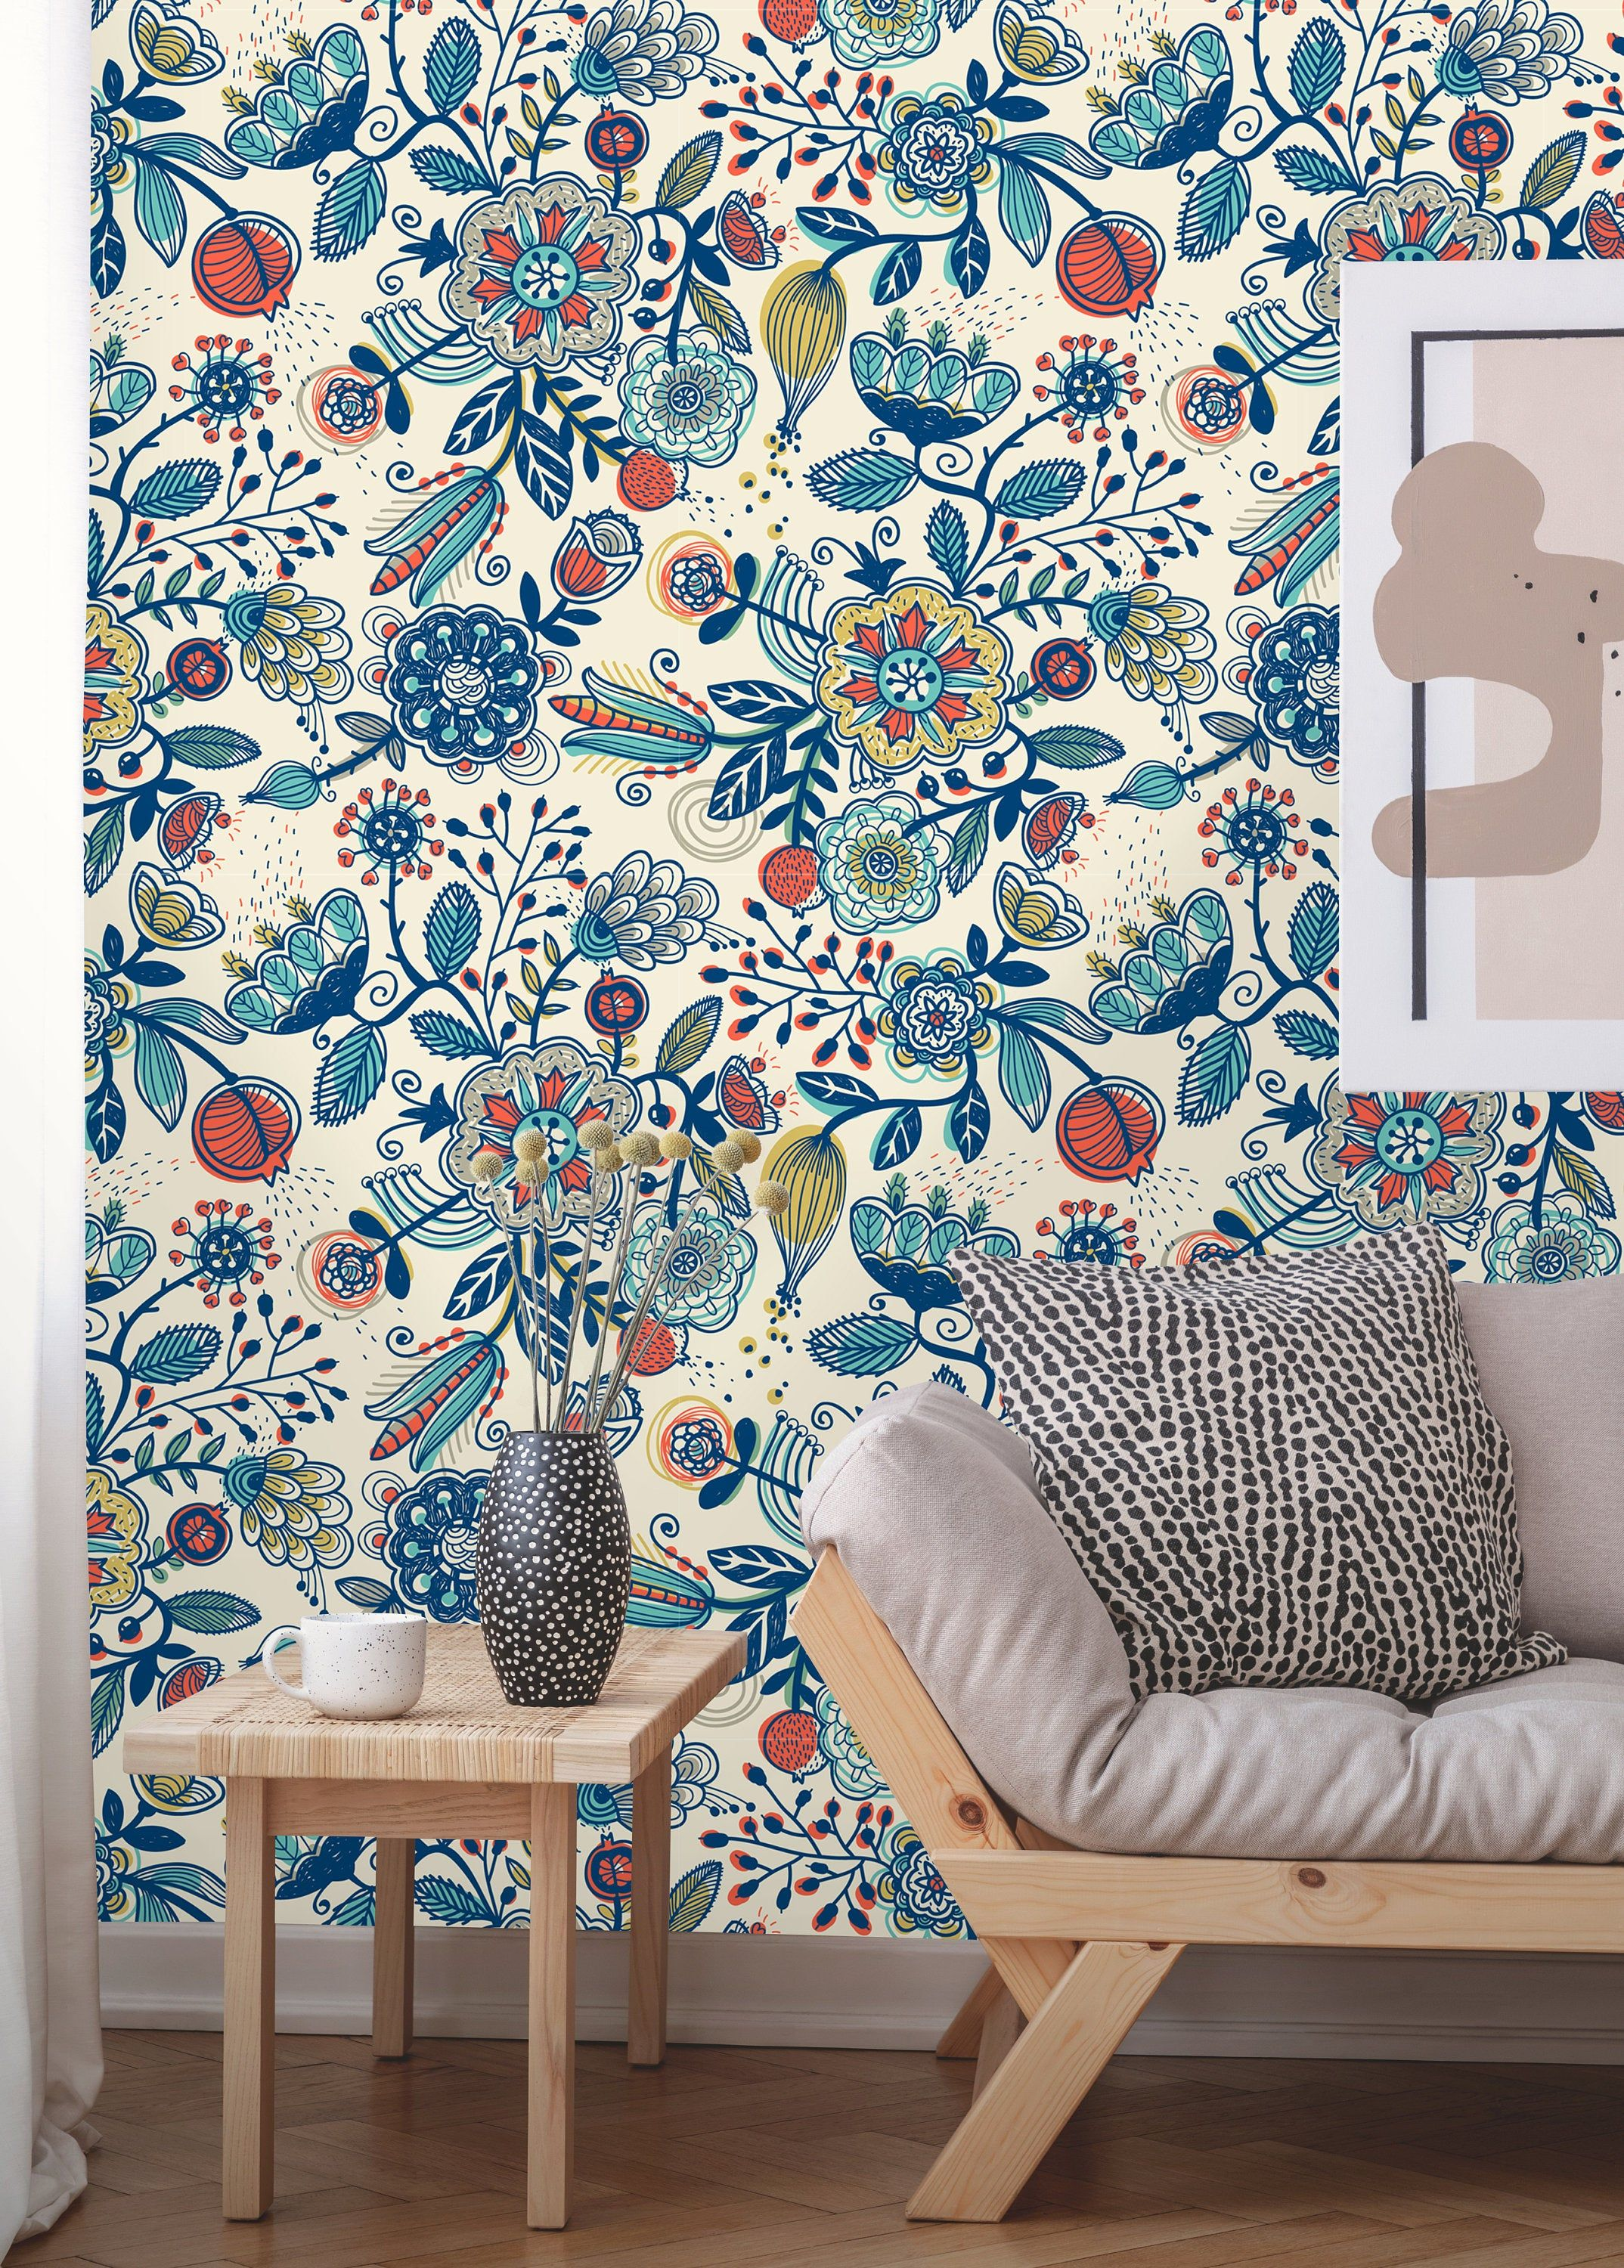 Removable Wallpaper Peel and Stick Floral Pattern Boho